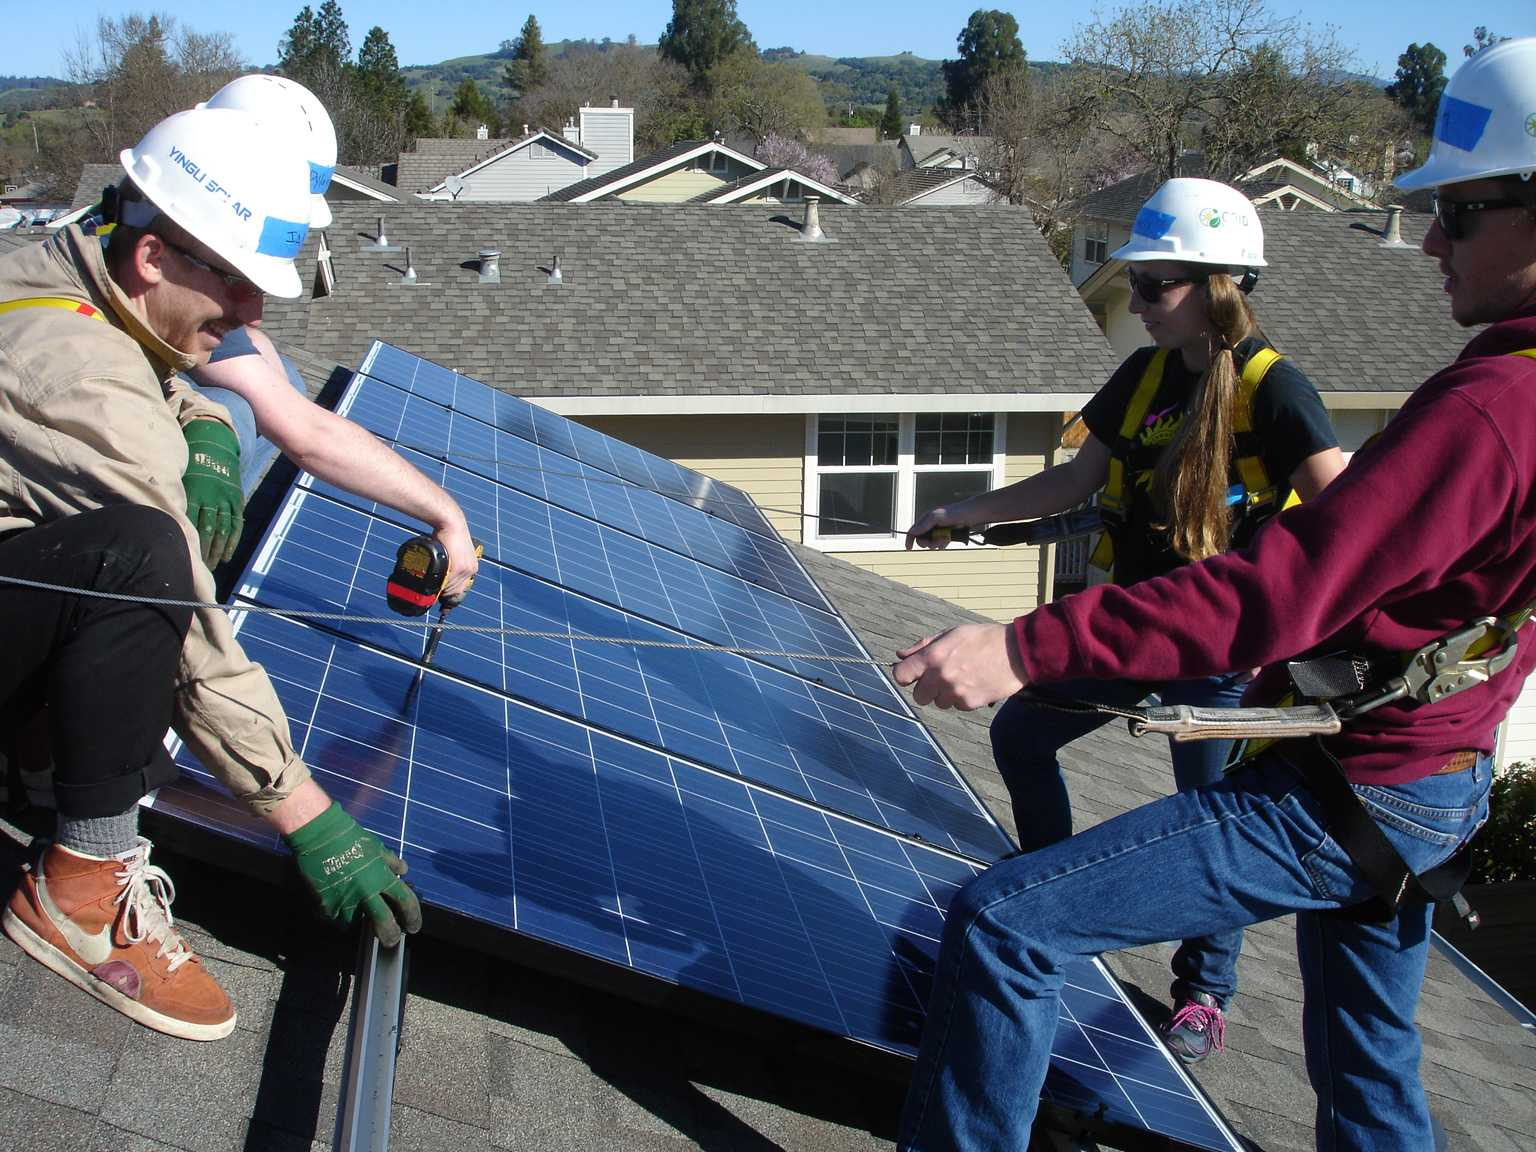 Students checking one of the solar panels on the roof of an SRJC building.